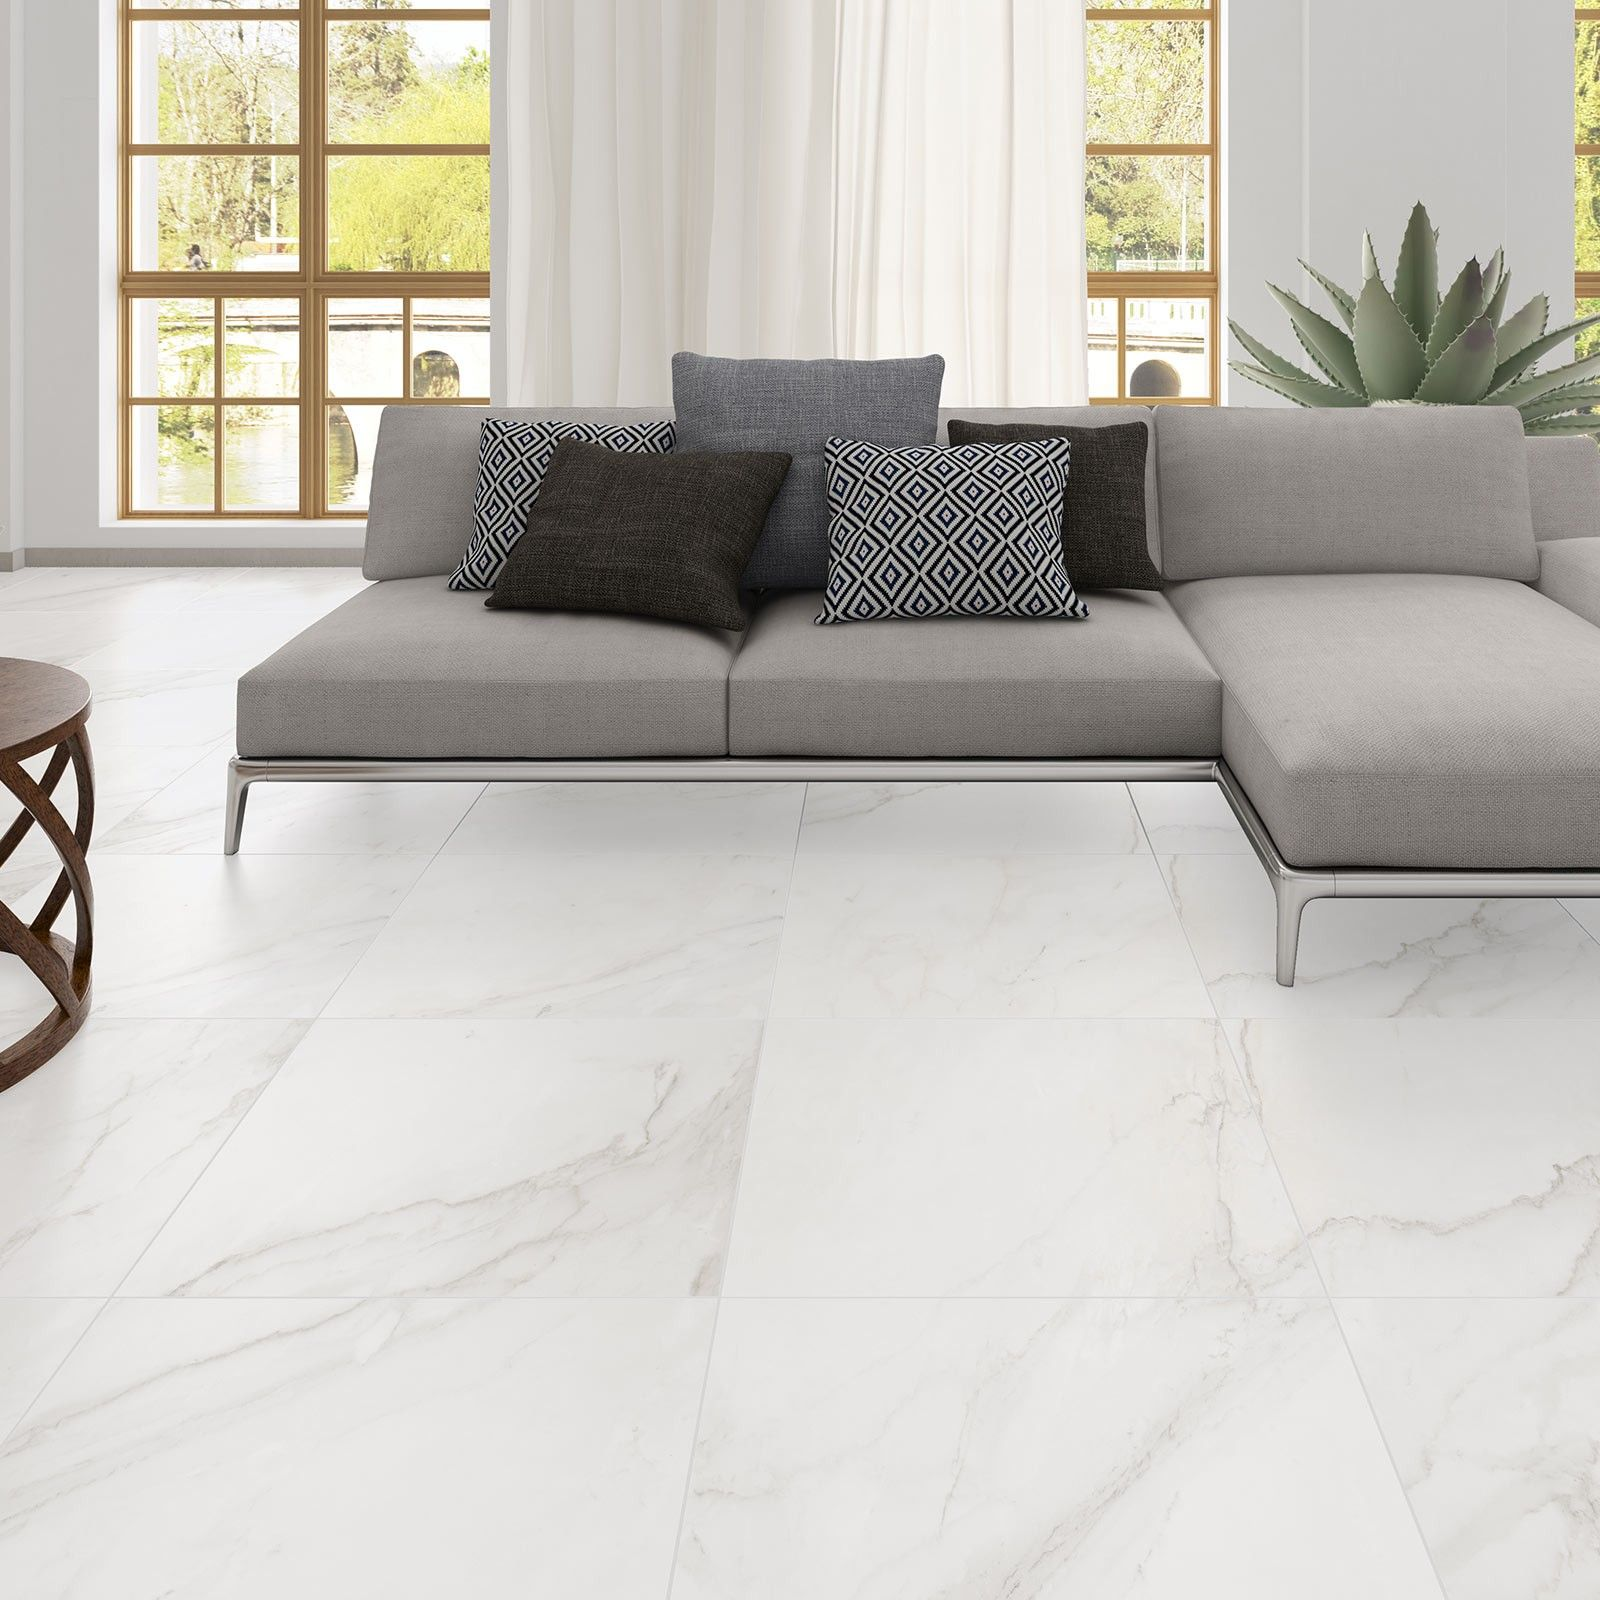 Building a stylish living room is simpler than you think white porcelain floor tile is fired at extremely high temperatures harder and stronger than ceramic tile and easy to clean as bathroom tile designs doublecrazyfo Gallery